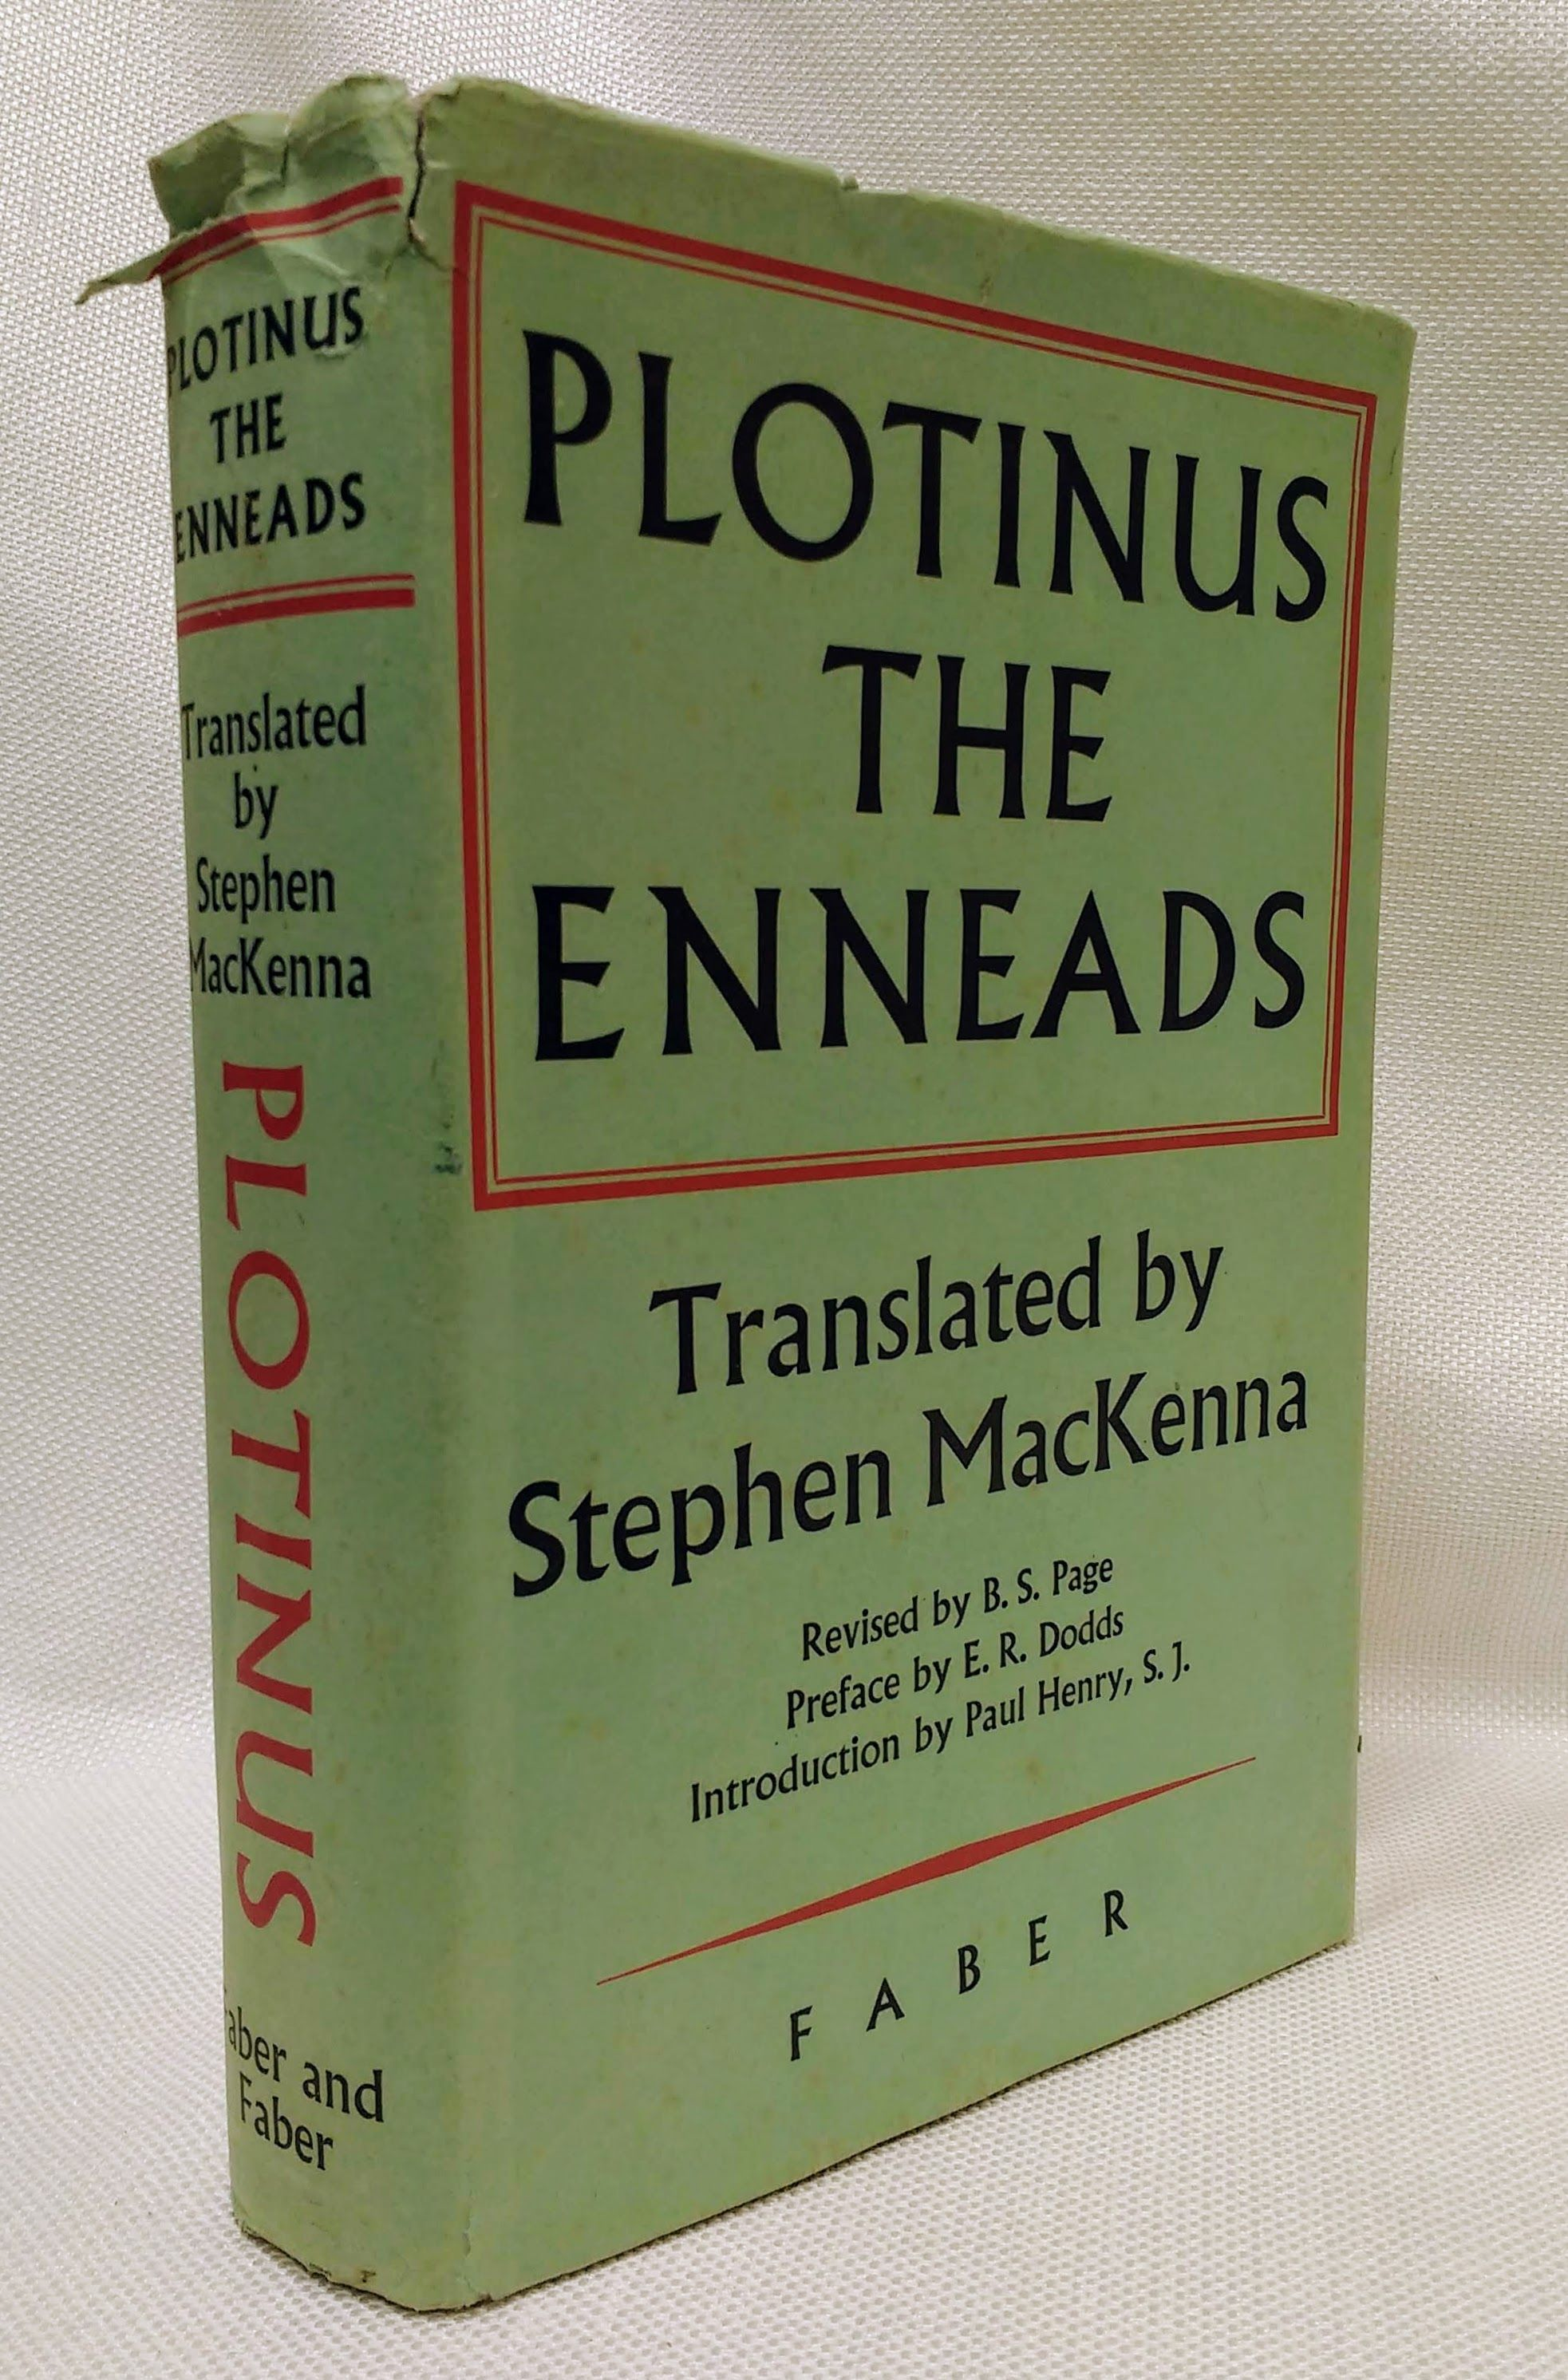 The Enneads (Third Edition), Plotinus; MacKenna, Stephen [translator]; Page, B.S. [revision]; Dodds, E.R. [preface]; Henry, Paul S.J. [introduction]